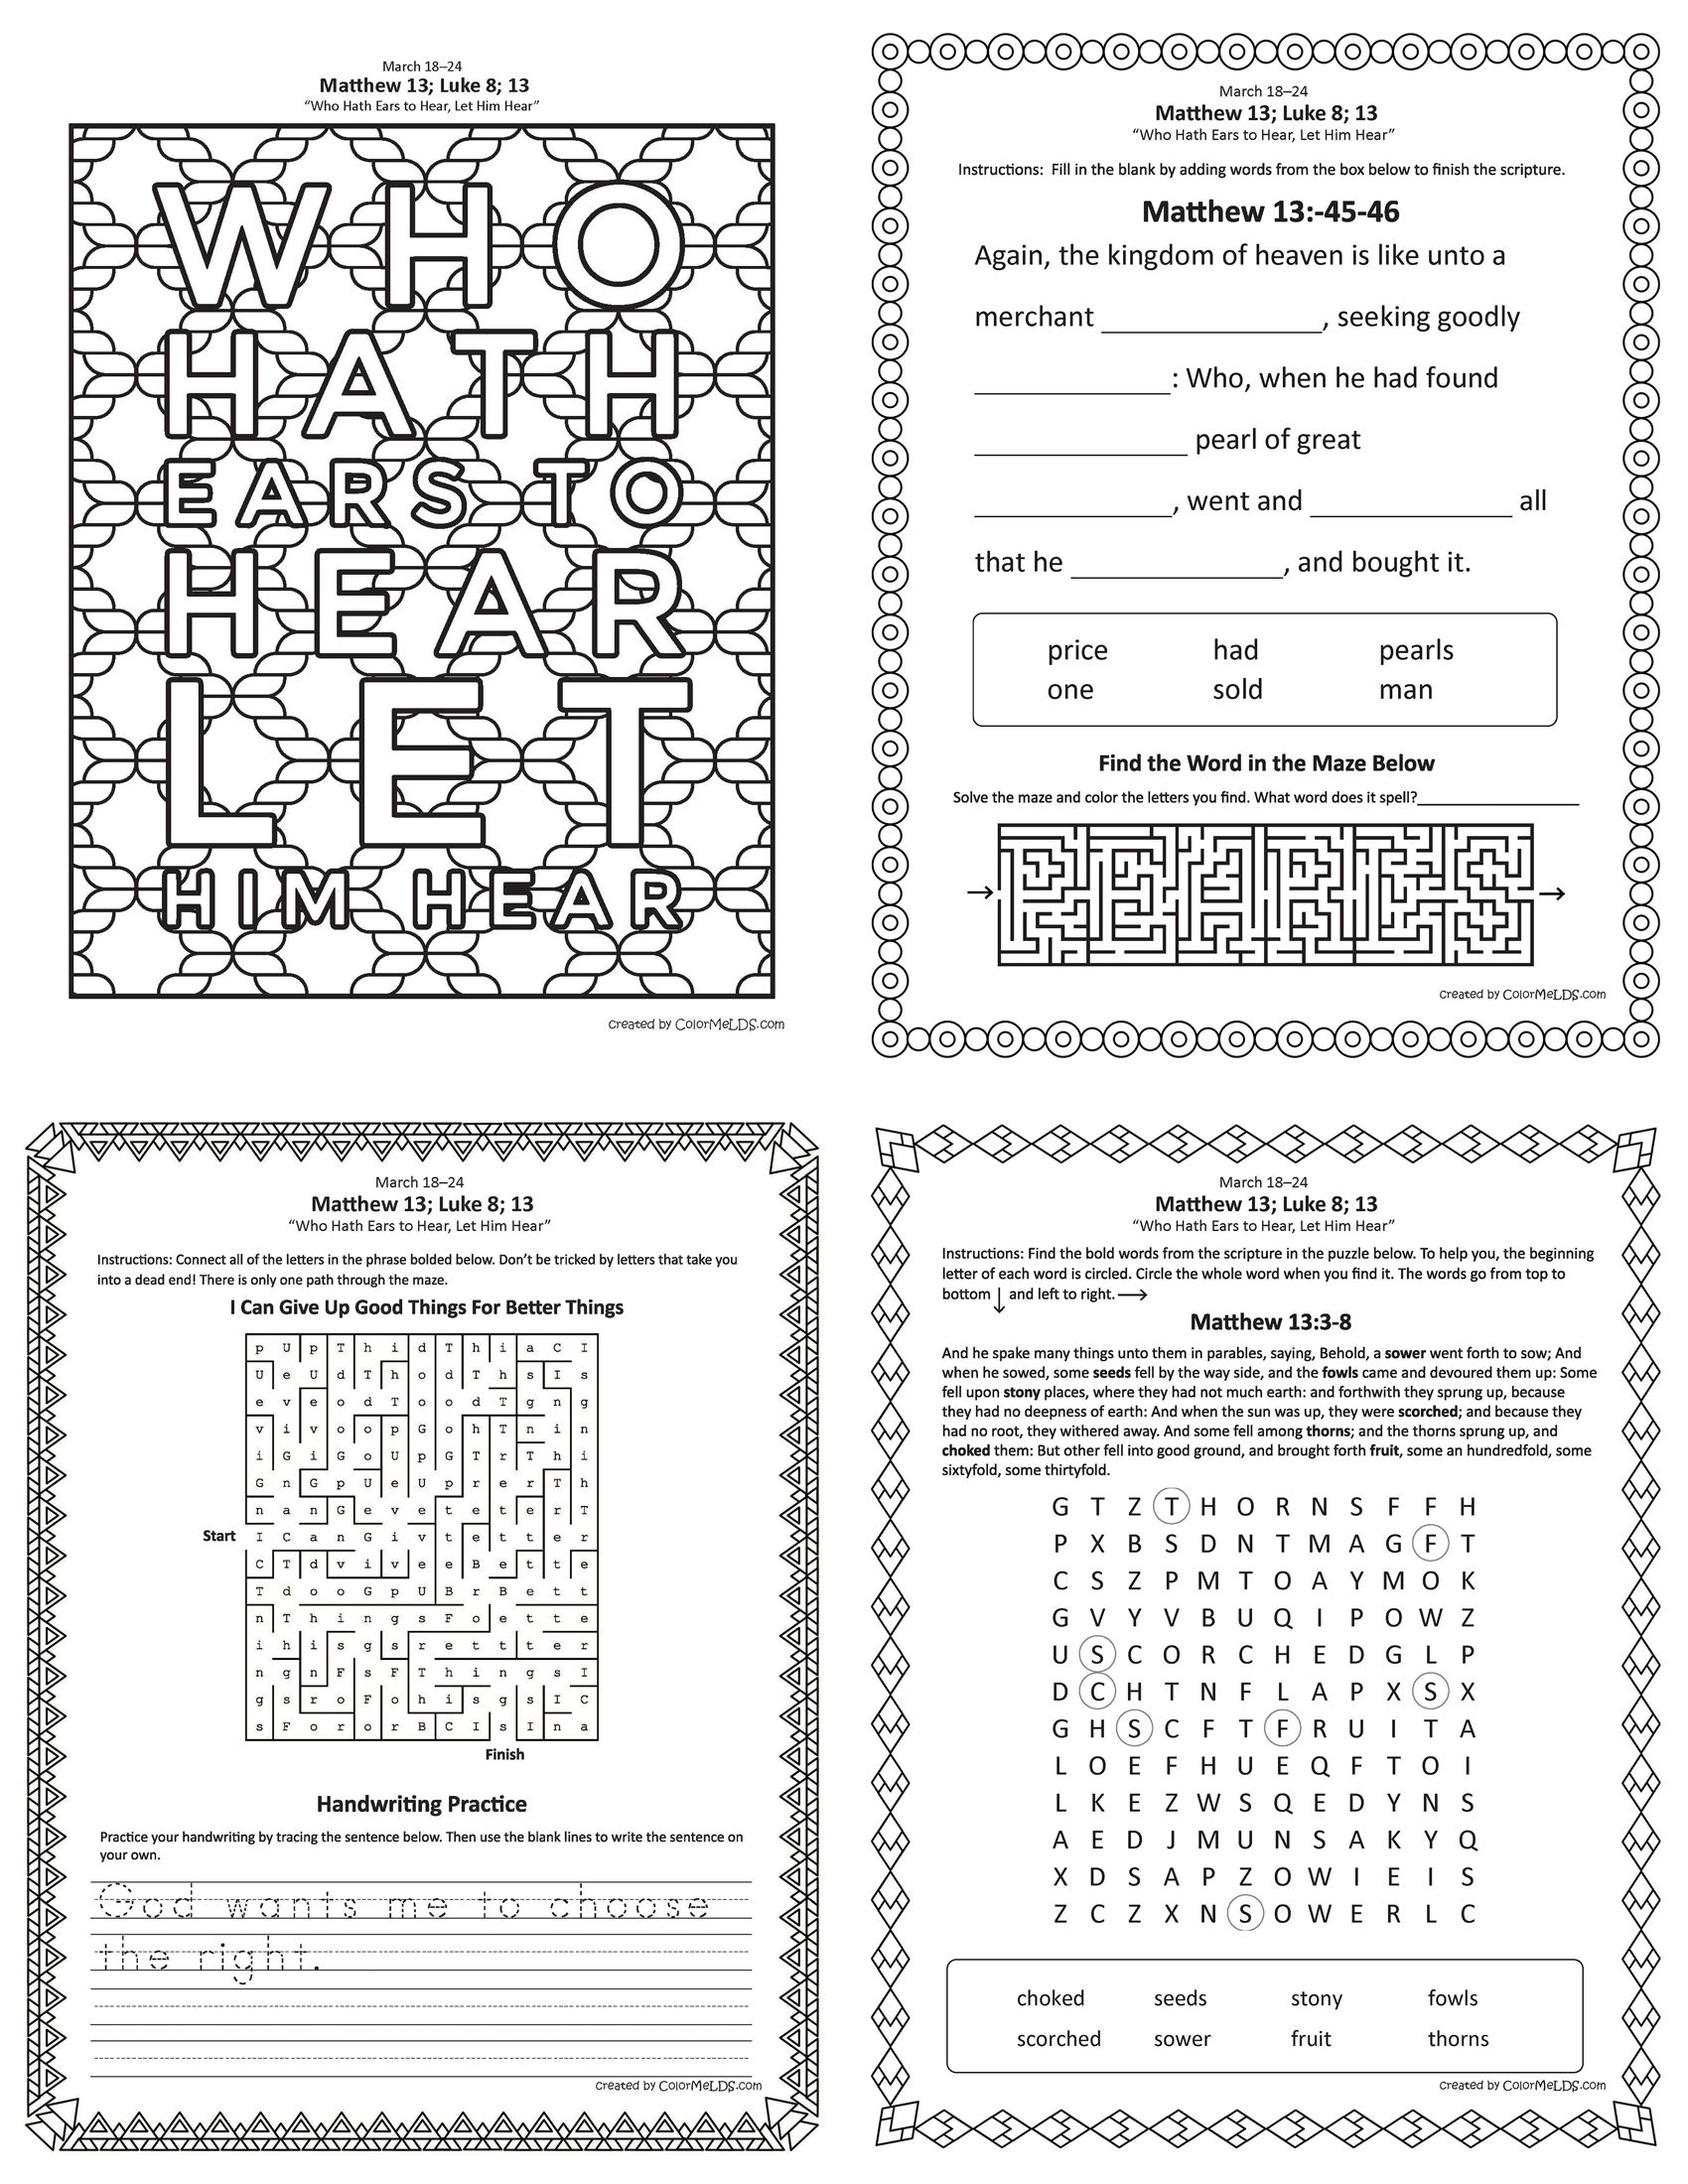 Free Lds Worksheets And Printables Word Crumb Mazes Word